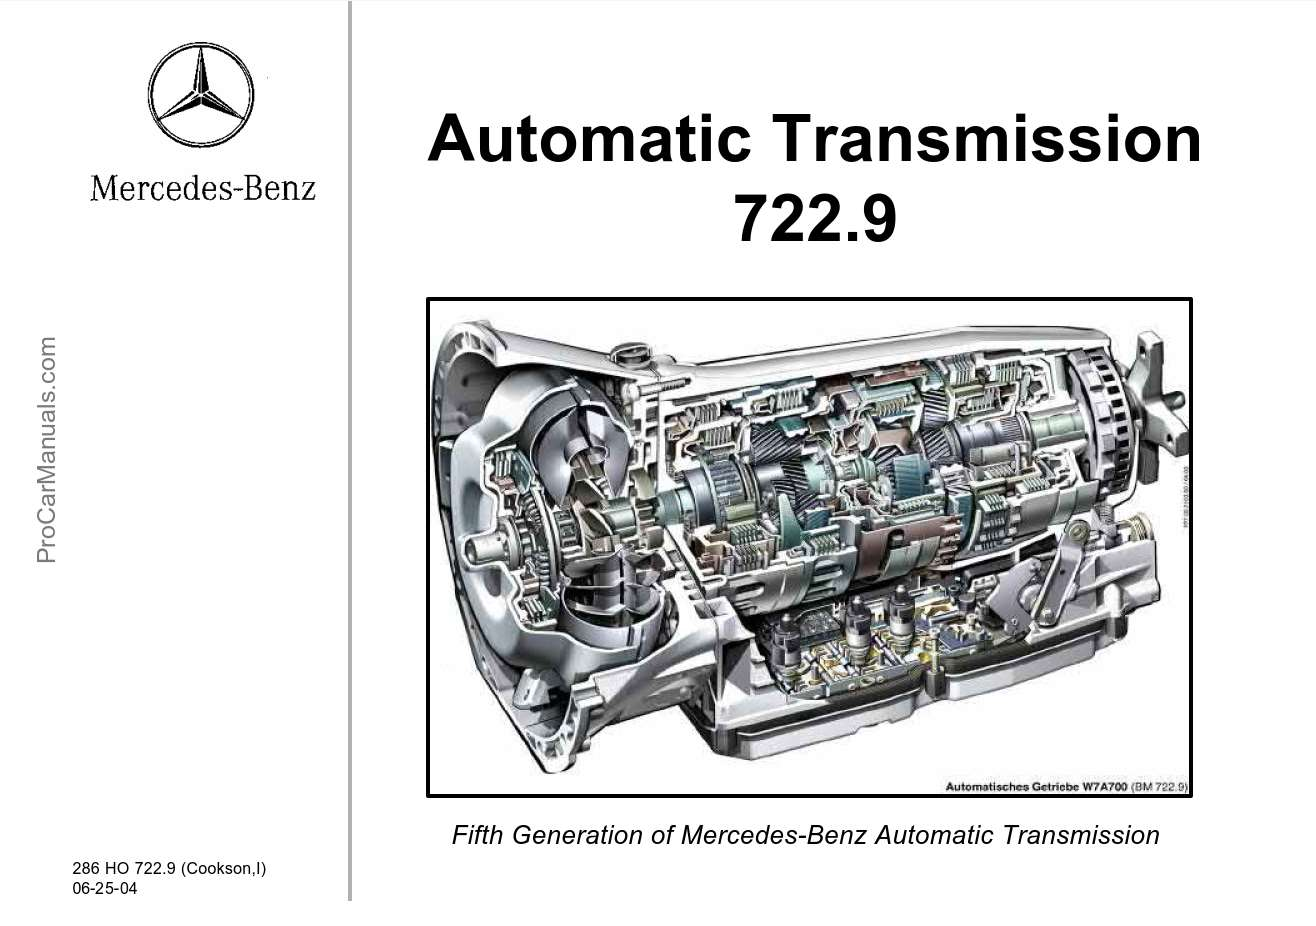 Mercedes-Benz Automatic Transmission 722.9 Technical